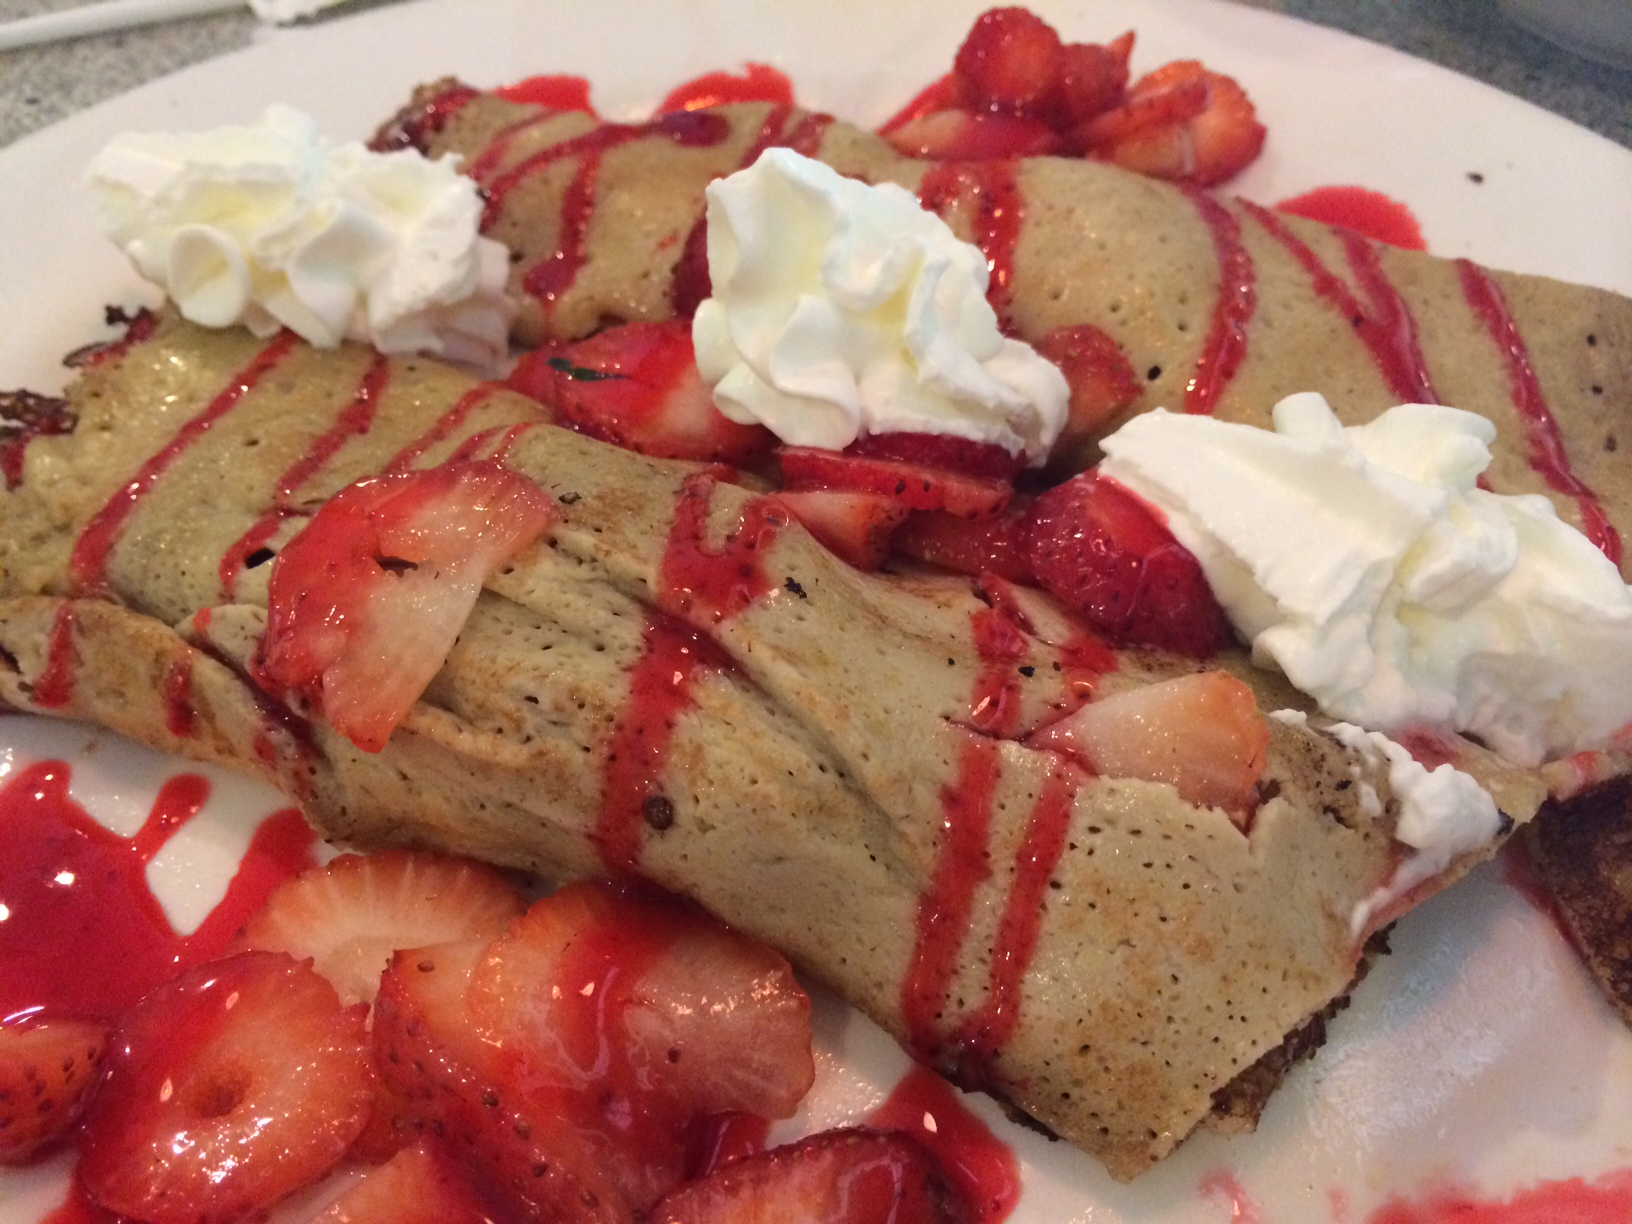 A crepe breakfast